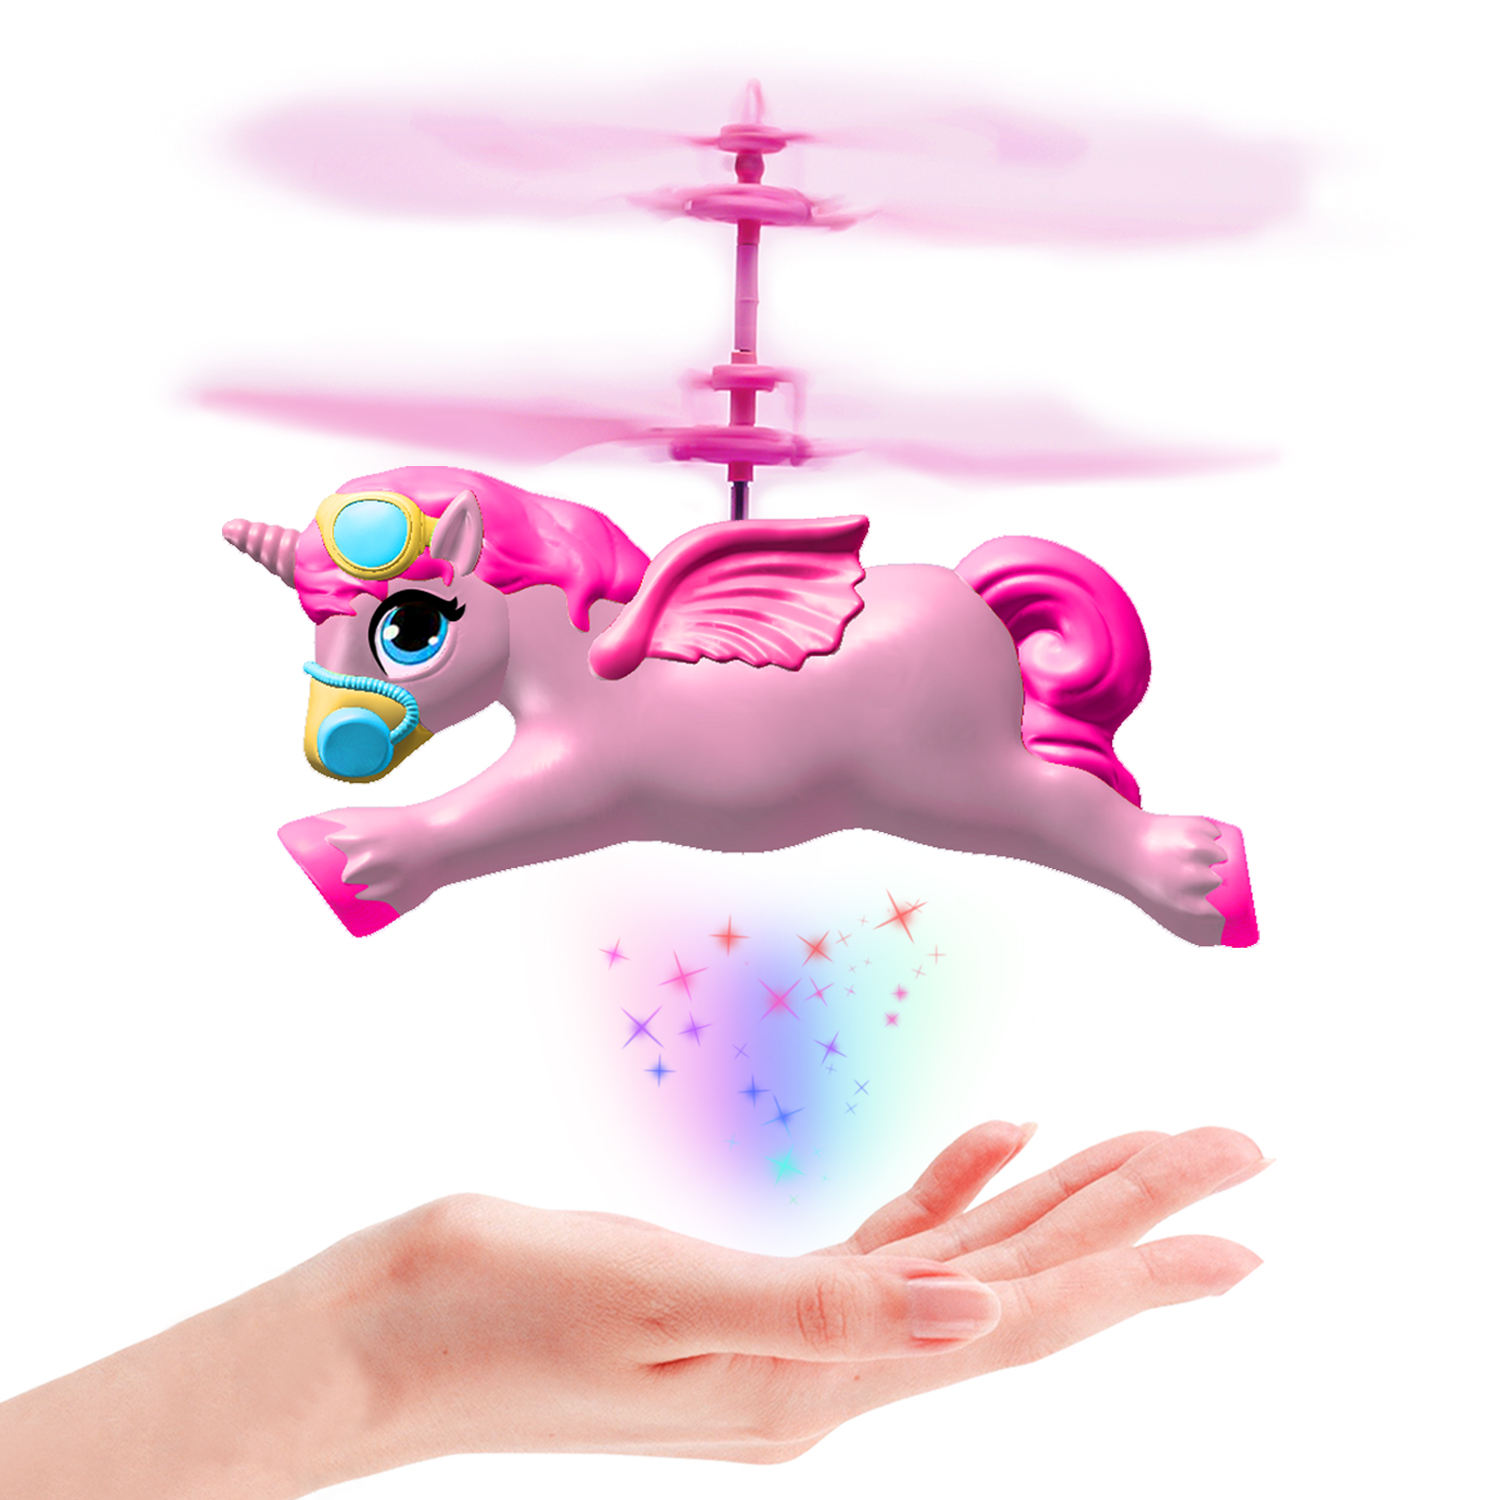 Factory Directly Supply New Listing Hand Sensor unicorn Helicopter Toys For Kids